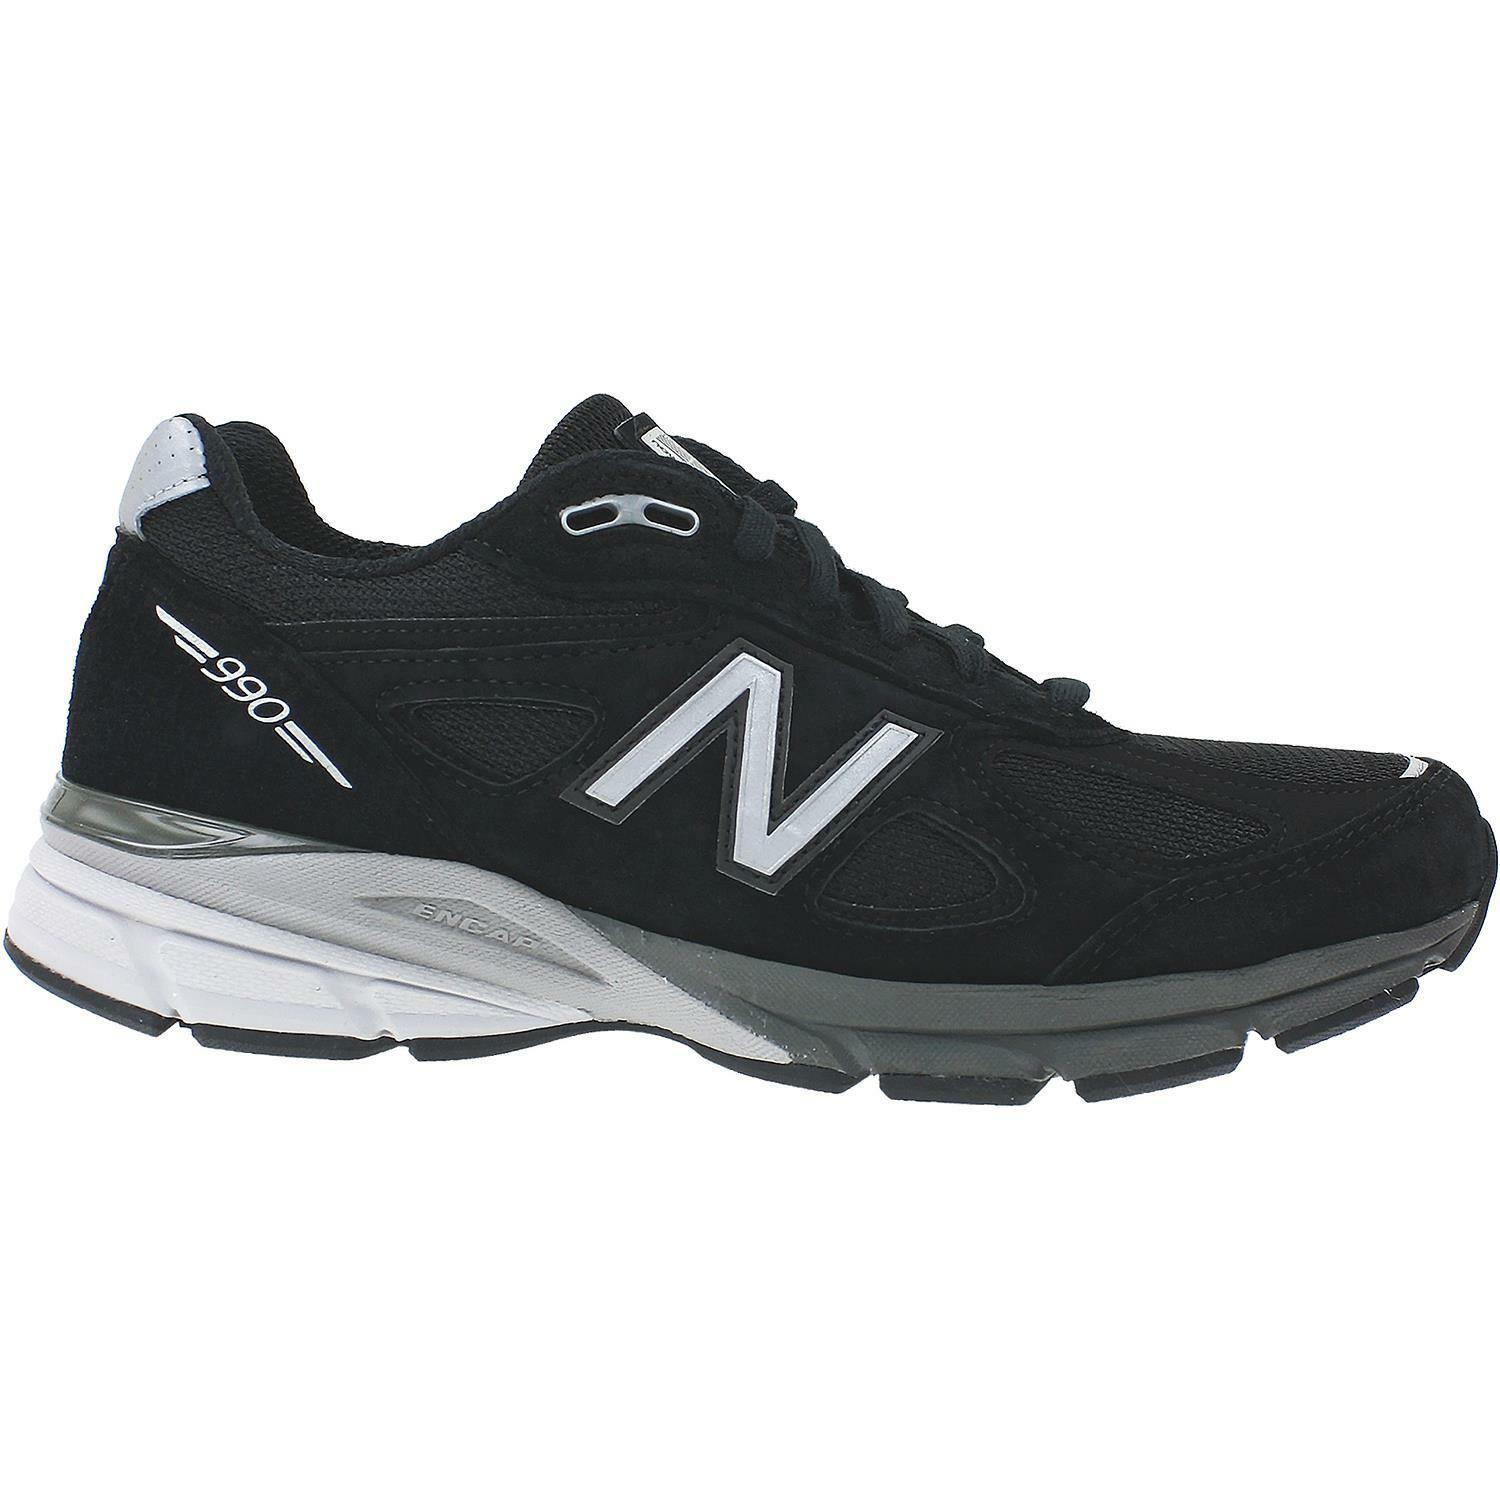 New Balance Men's M990BK4 Running shoes in D  2E and 4E